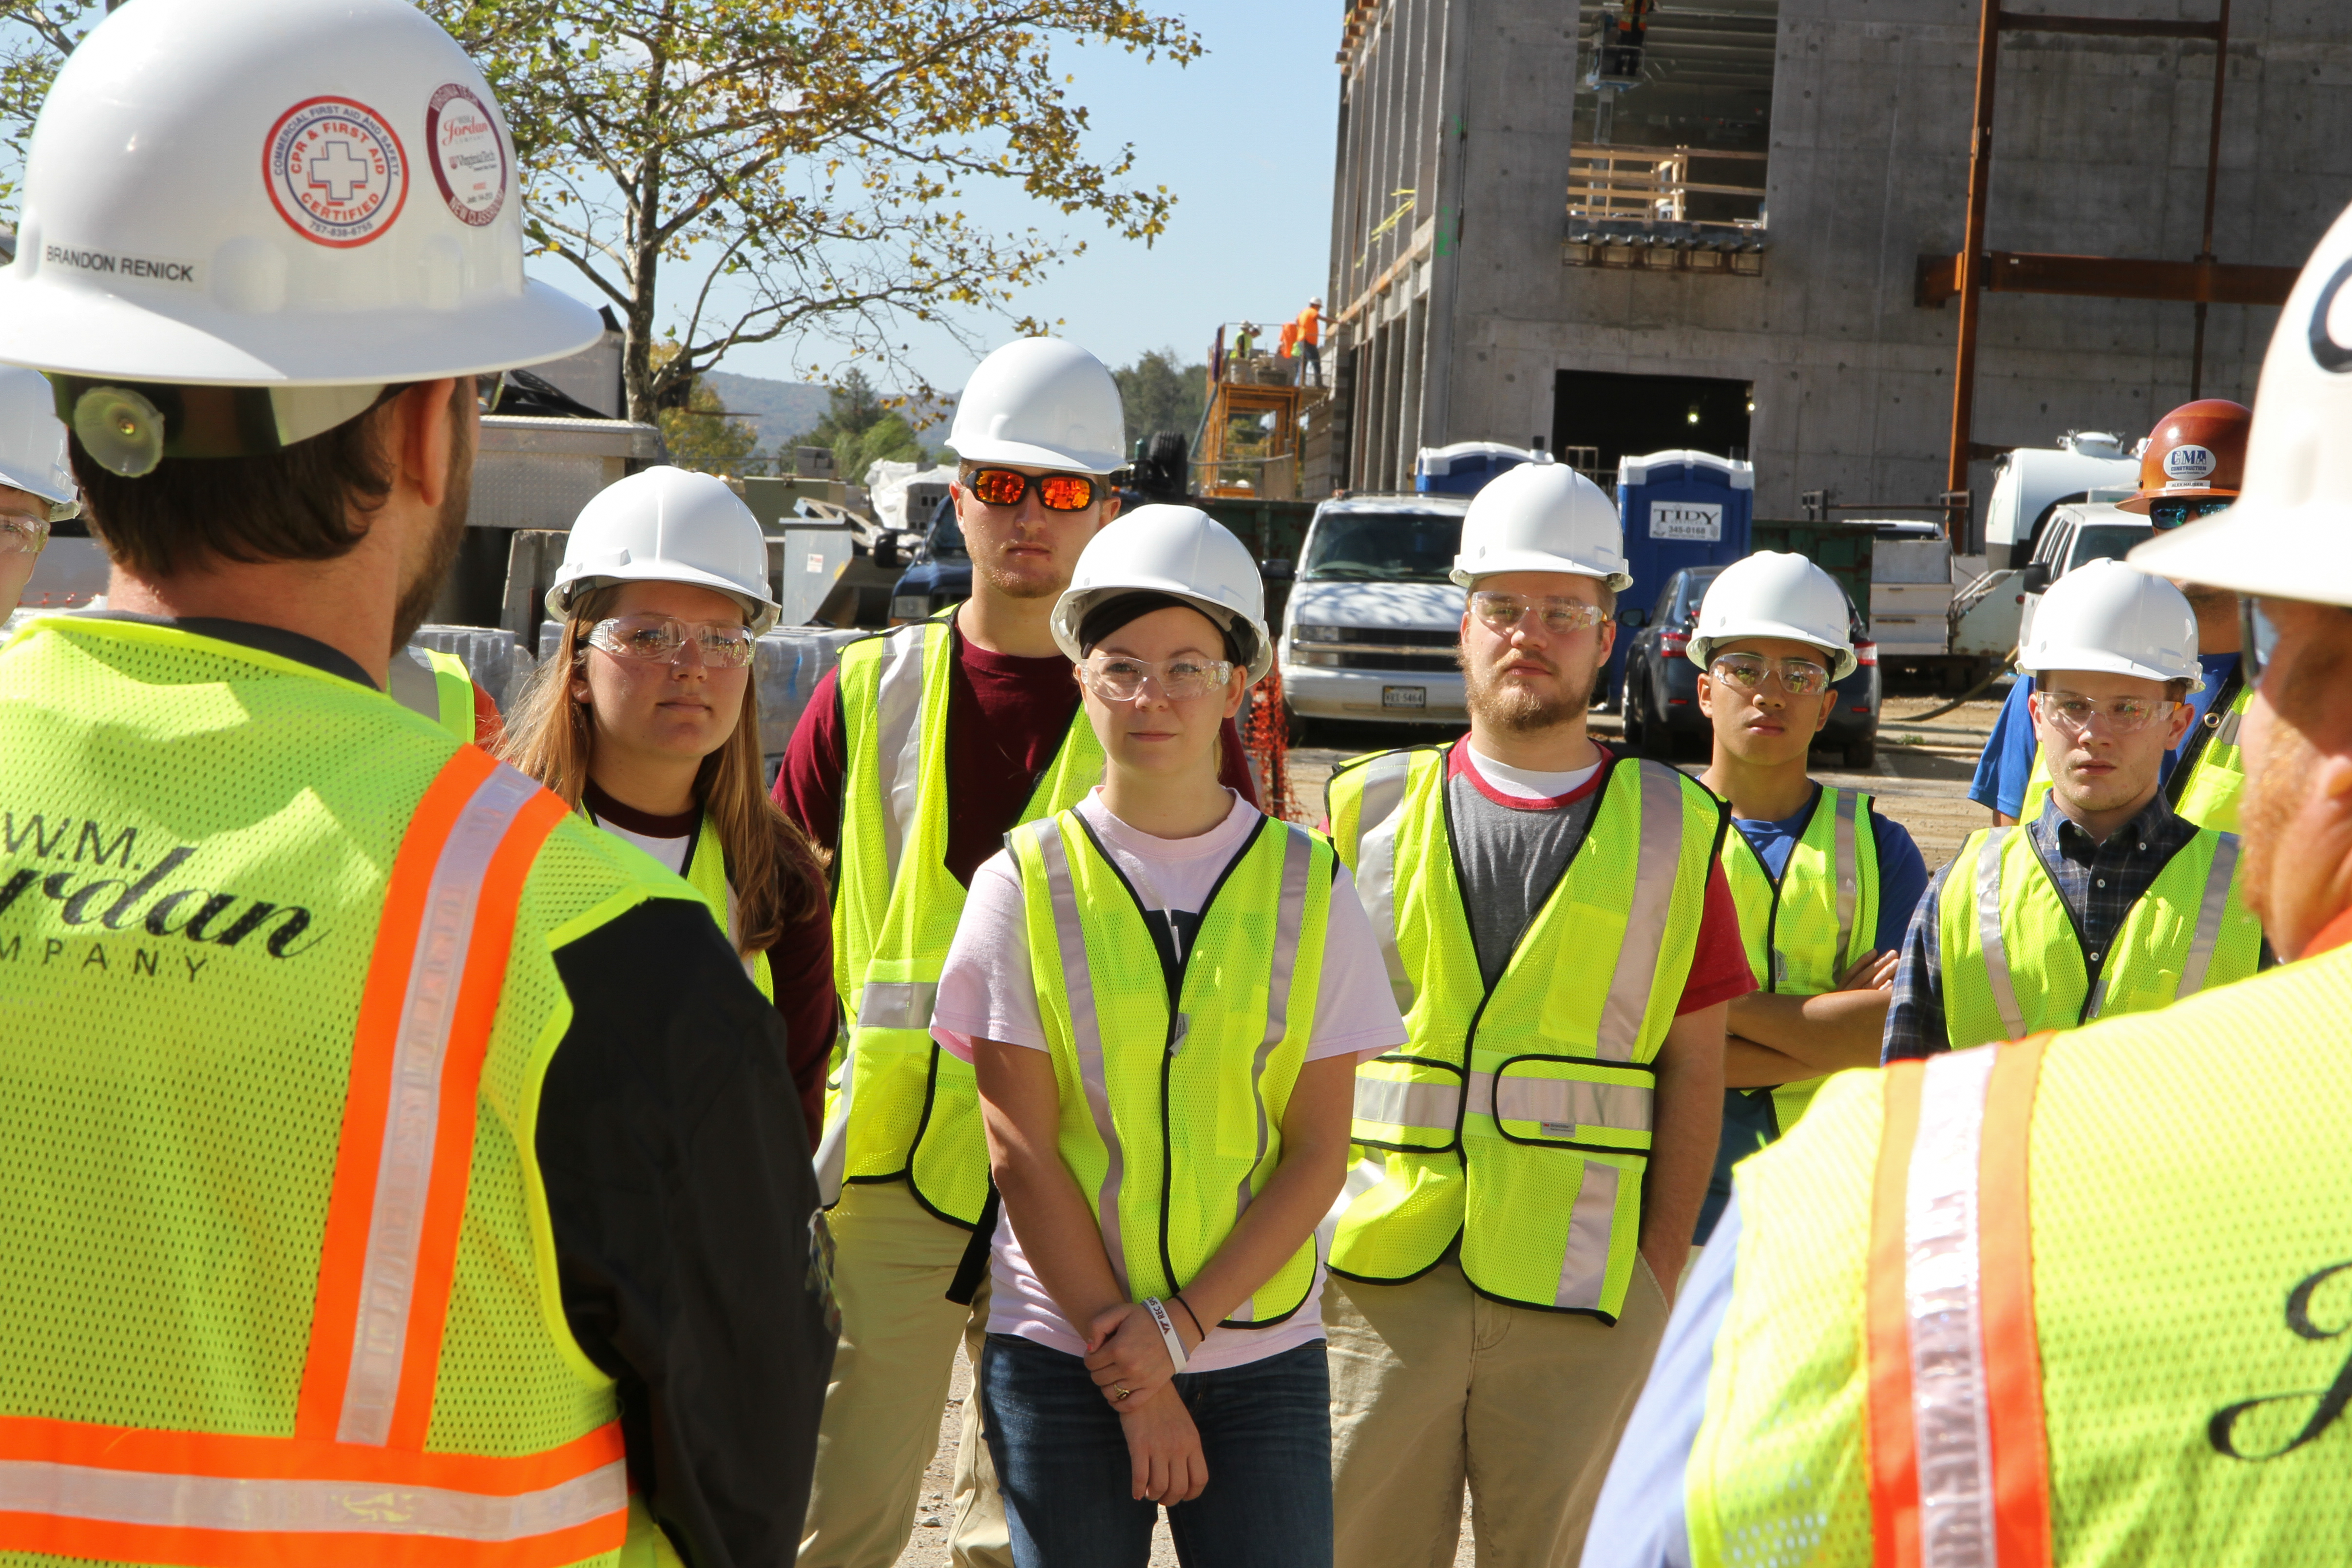 Brendon Renick Assistant Project Manager with W.M. Jordan, leads students on a tour of a  construction site.